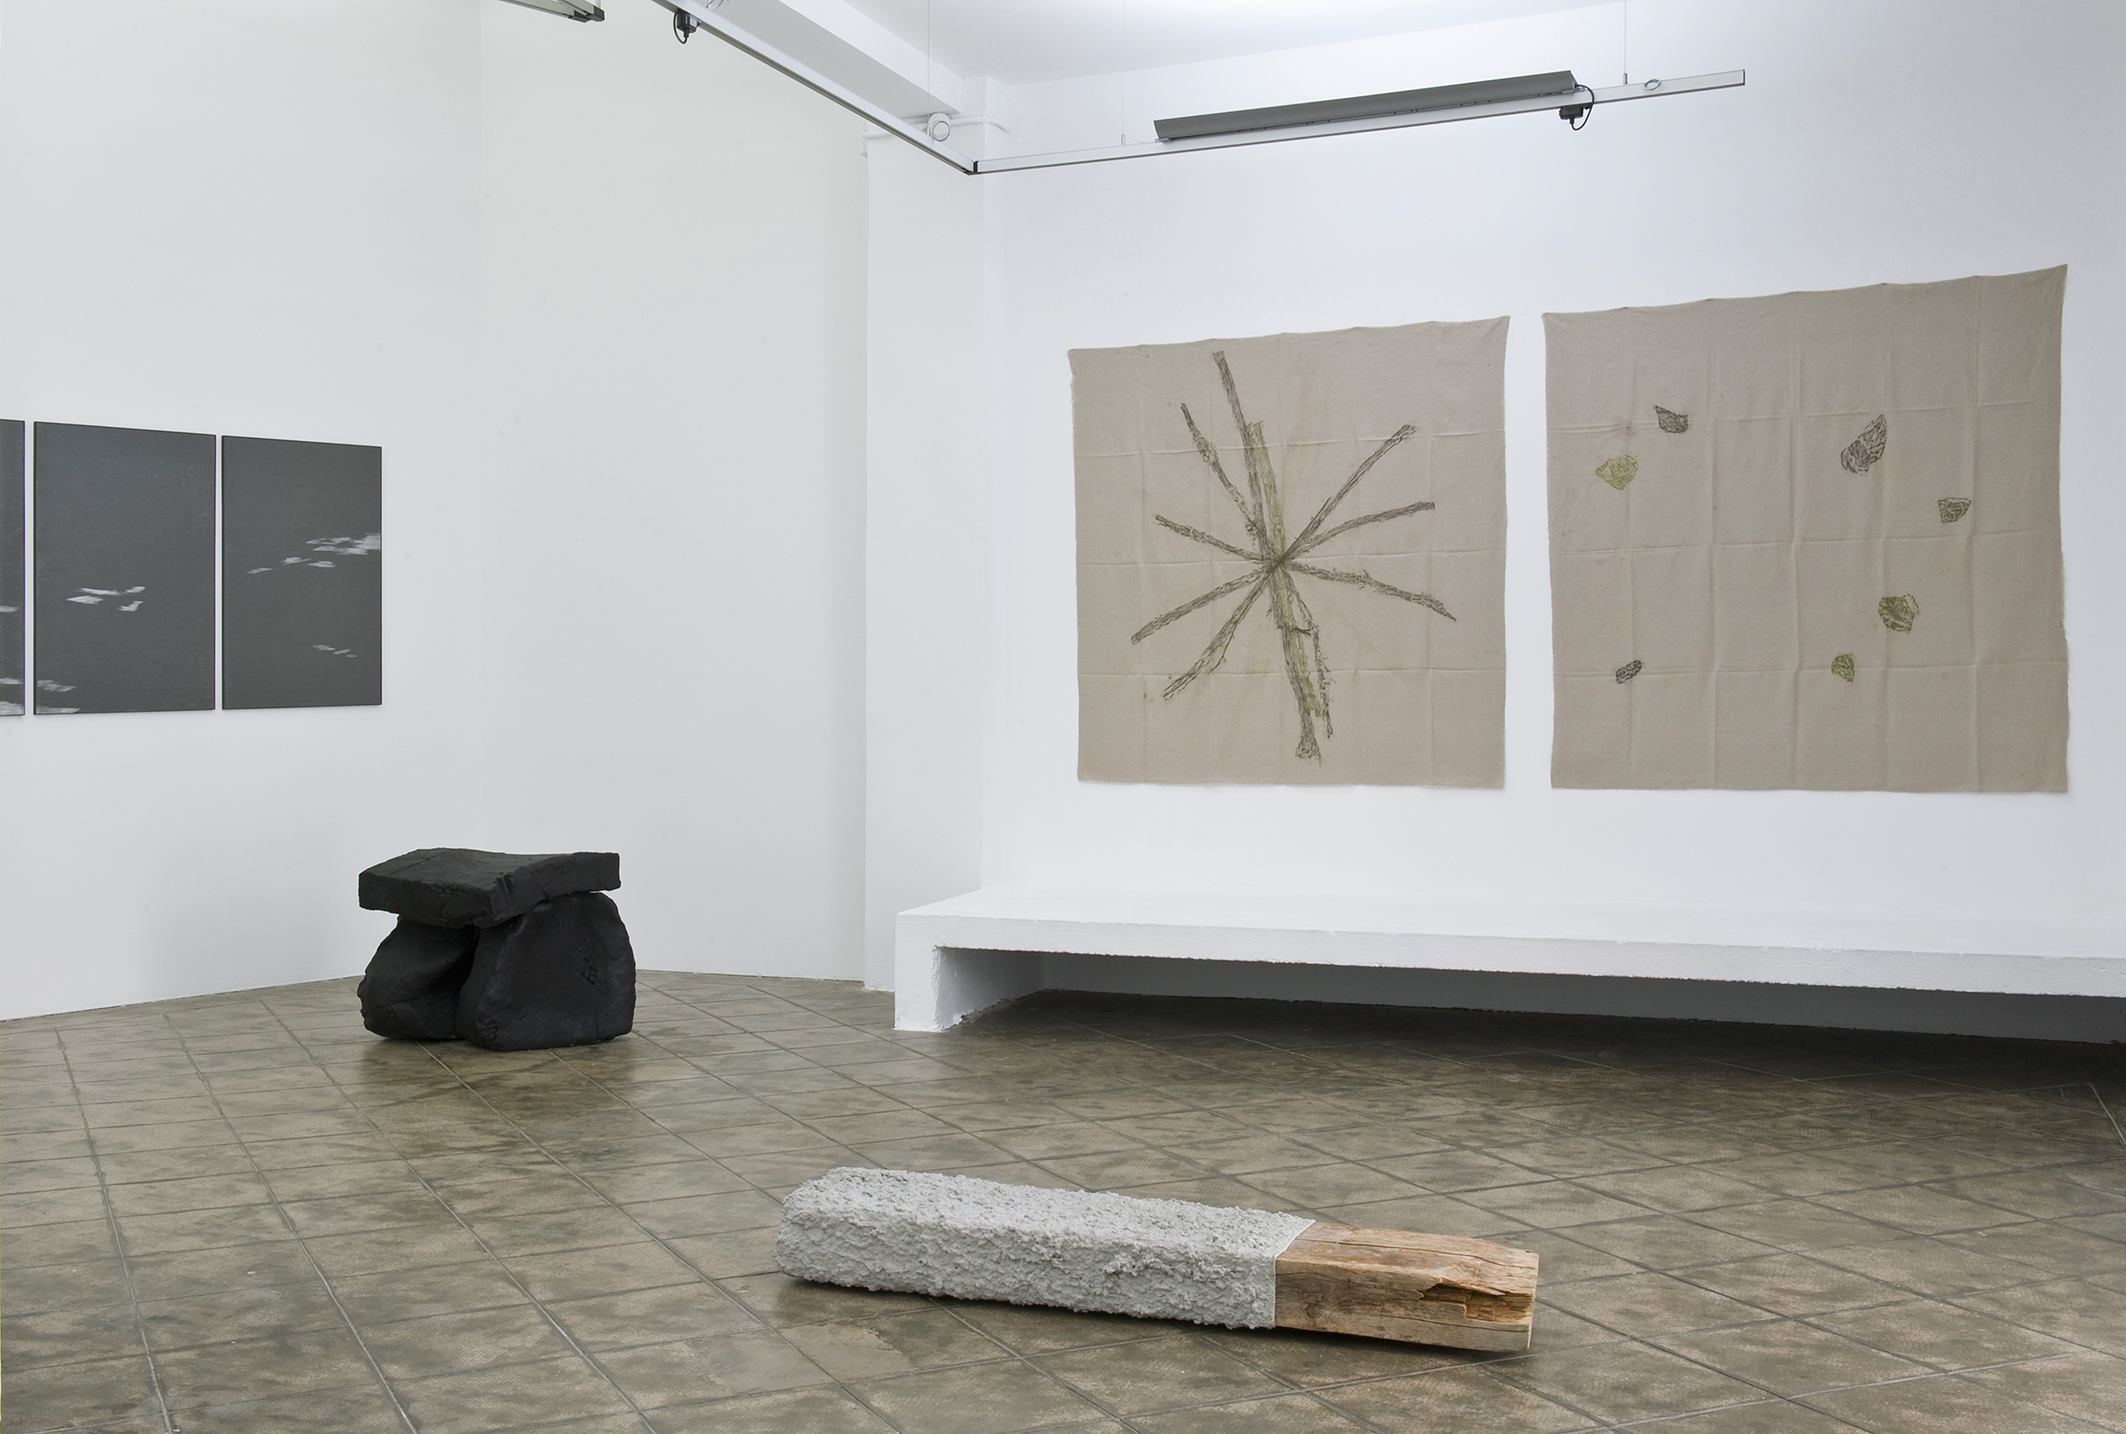 Installation view: Map, Record, Picture, Sculpture, ProjecteSD, Barcelona, 2013. | Map, Record, Picture, Sculpture | ProjecteSD